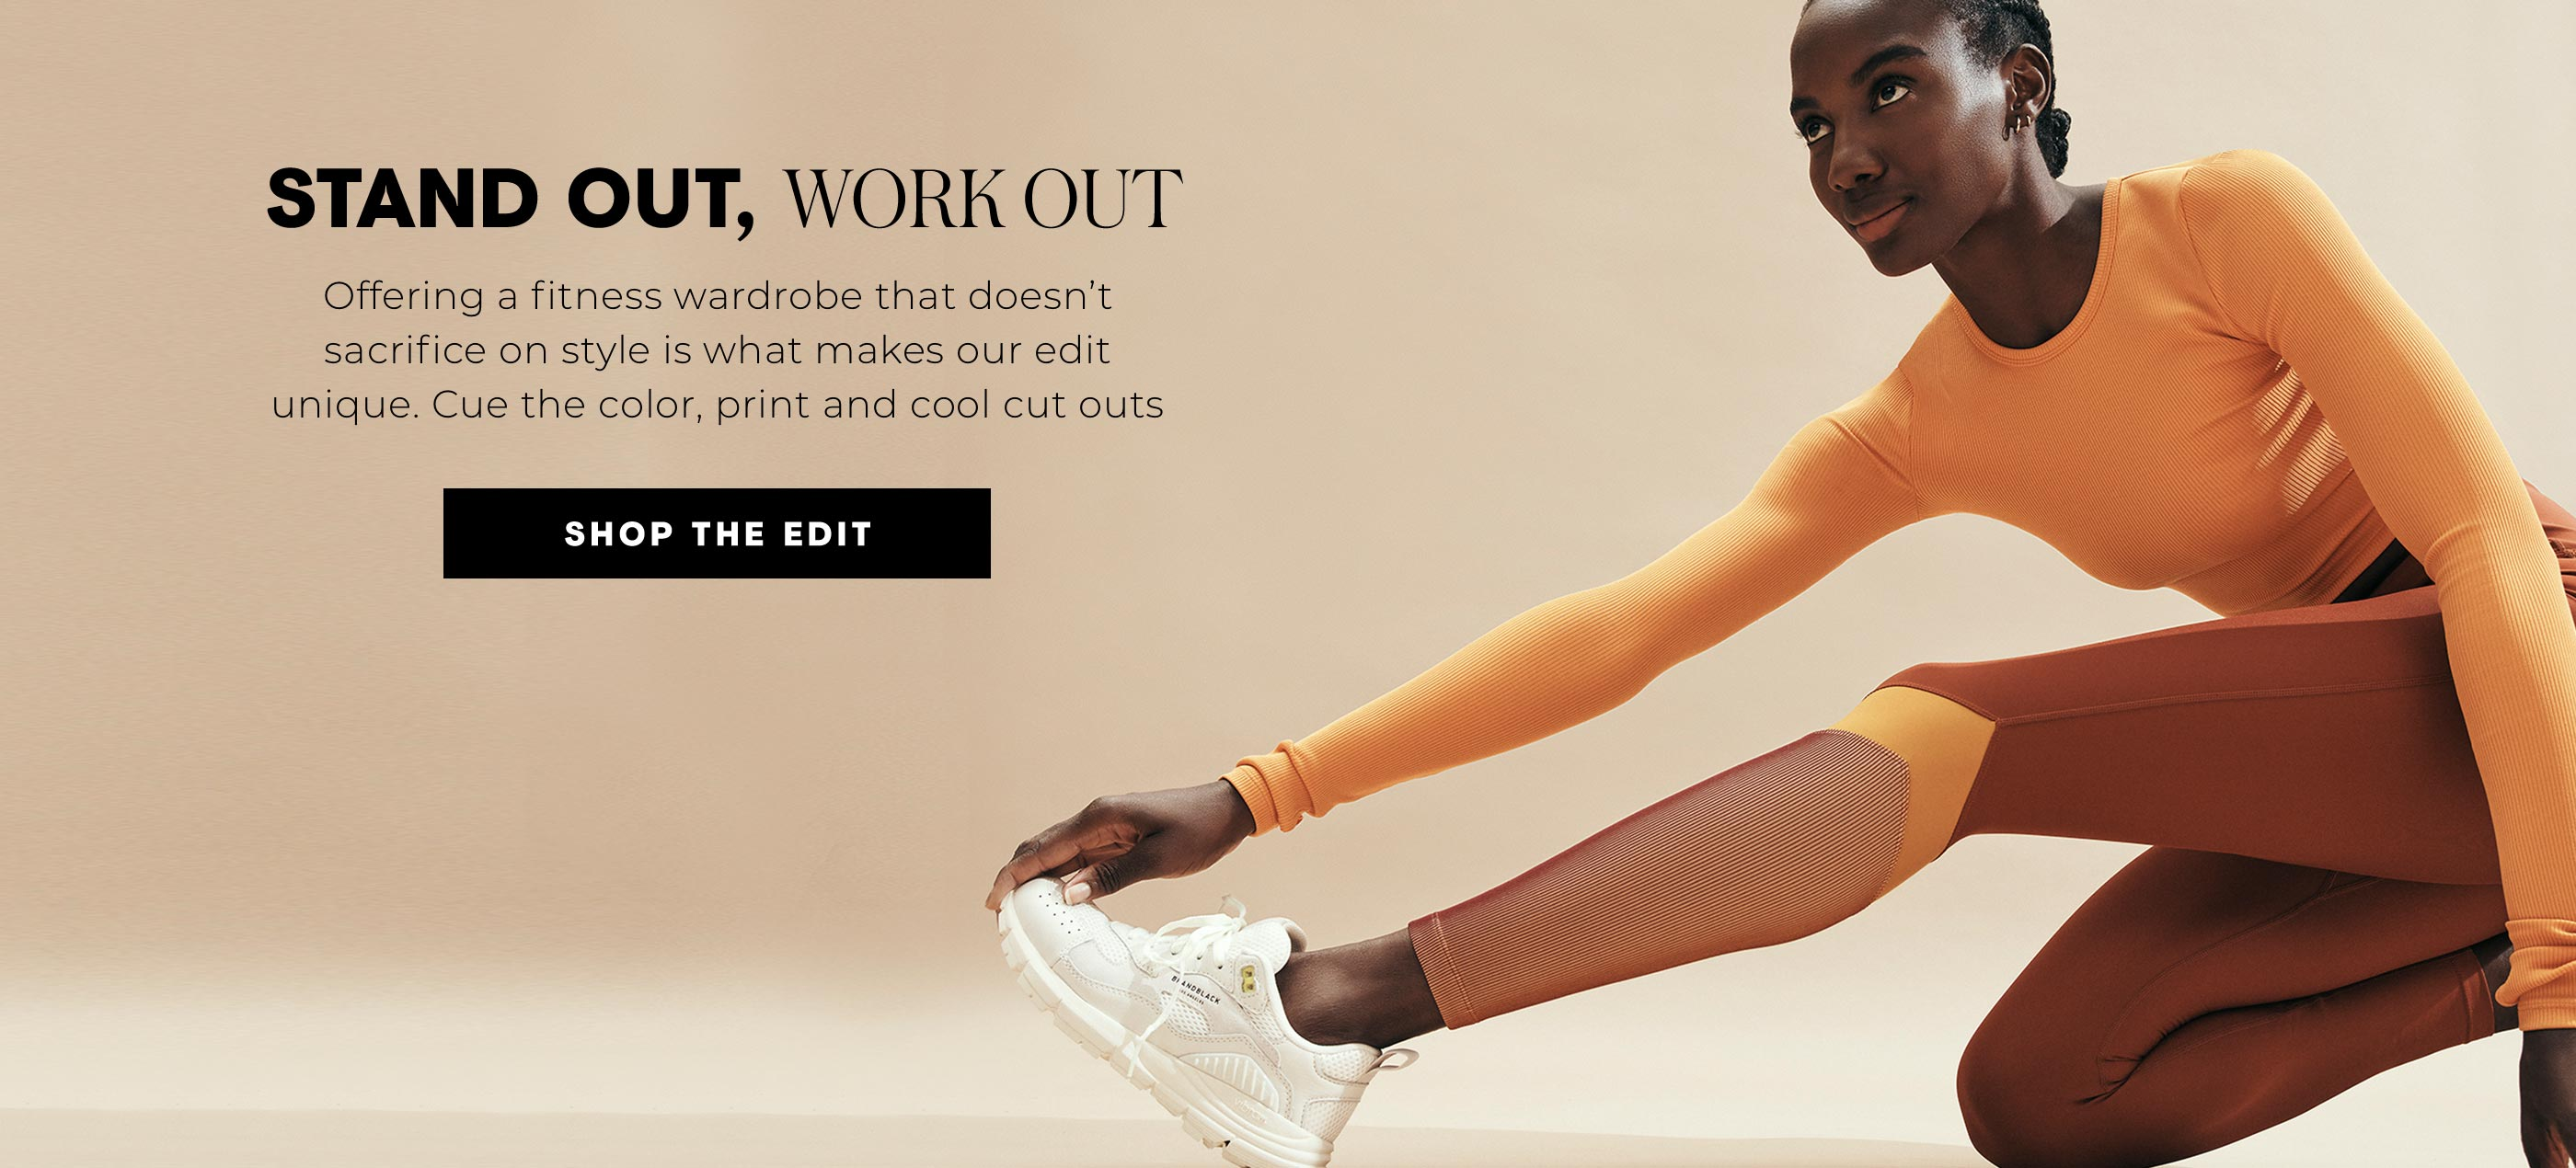 Stand Out, Work Out Offering a fitness wardrobe that doesn't sacrifice on style is what makes our edit unique. Cue the color, print and cool cut outs